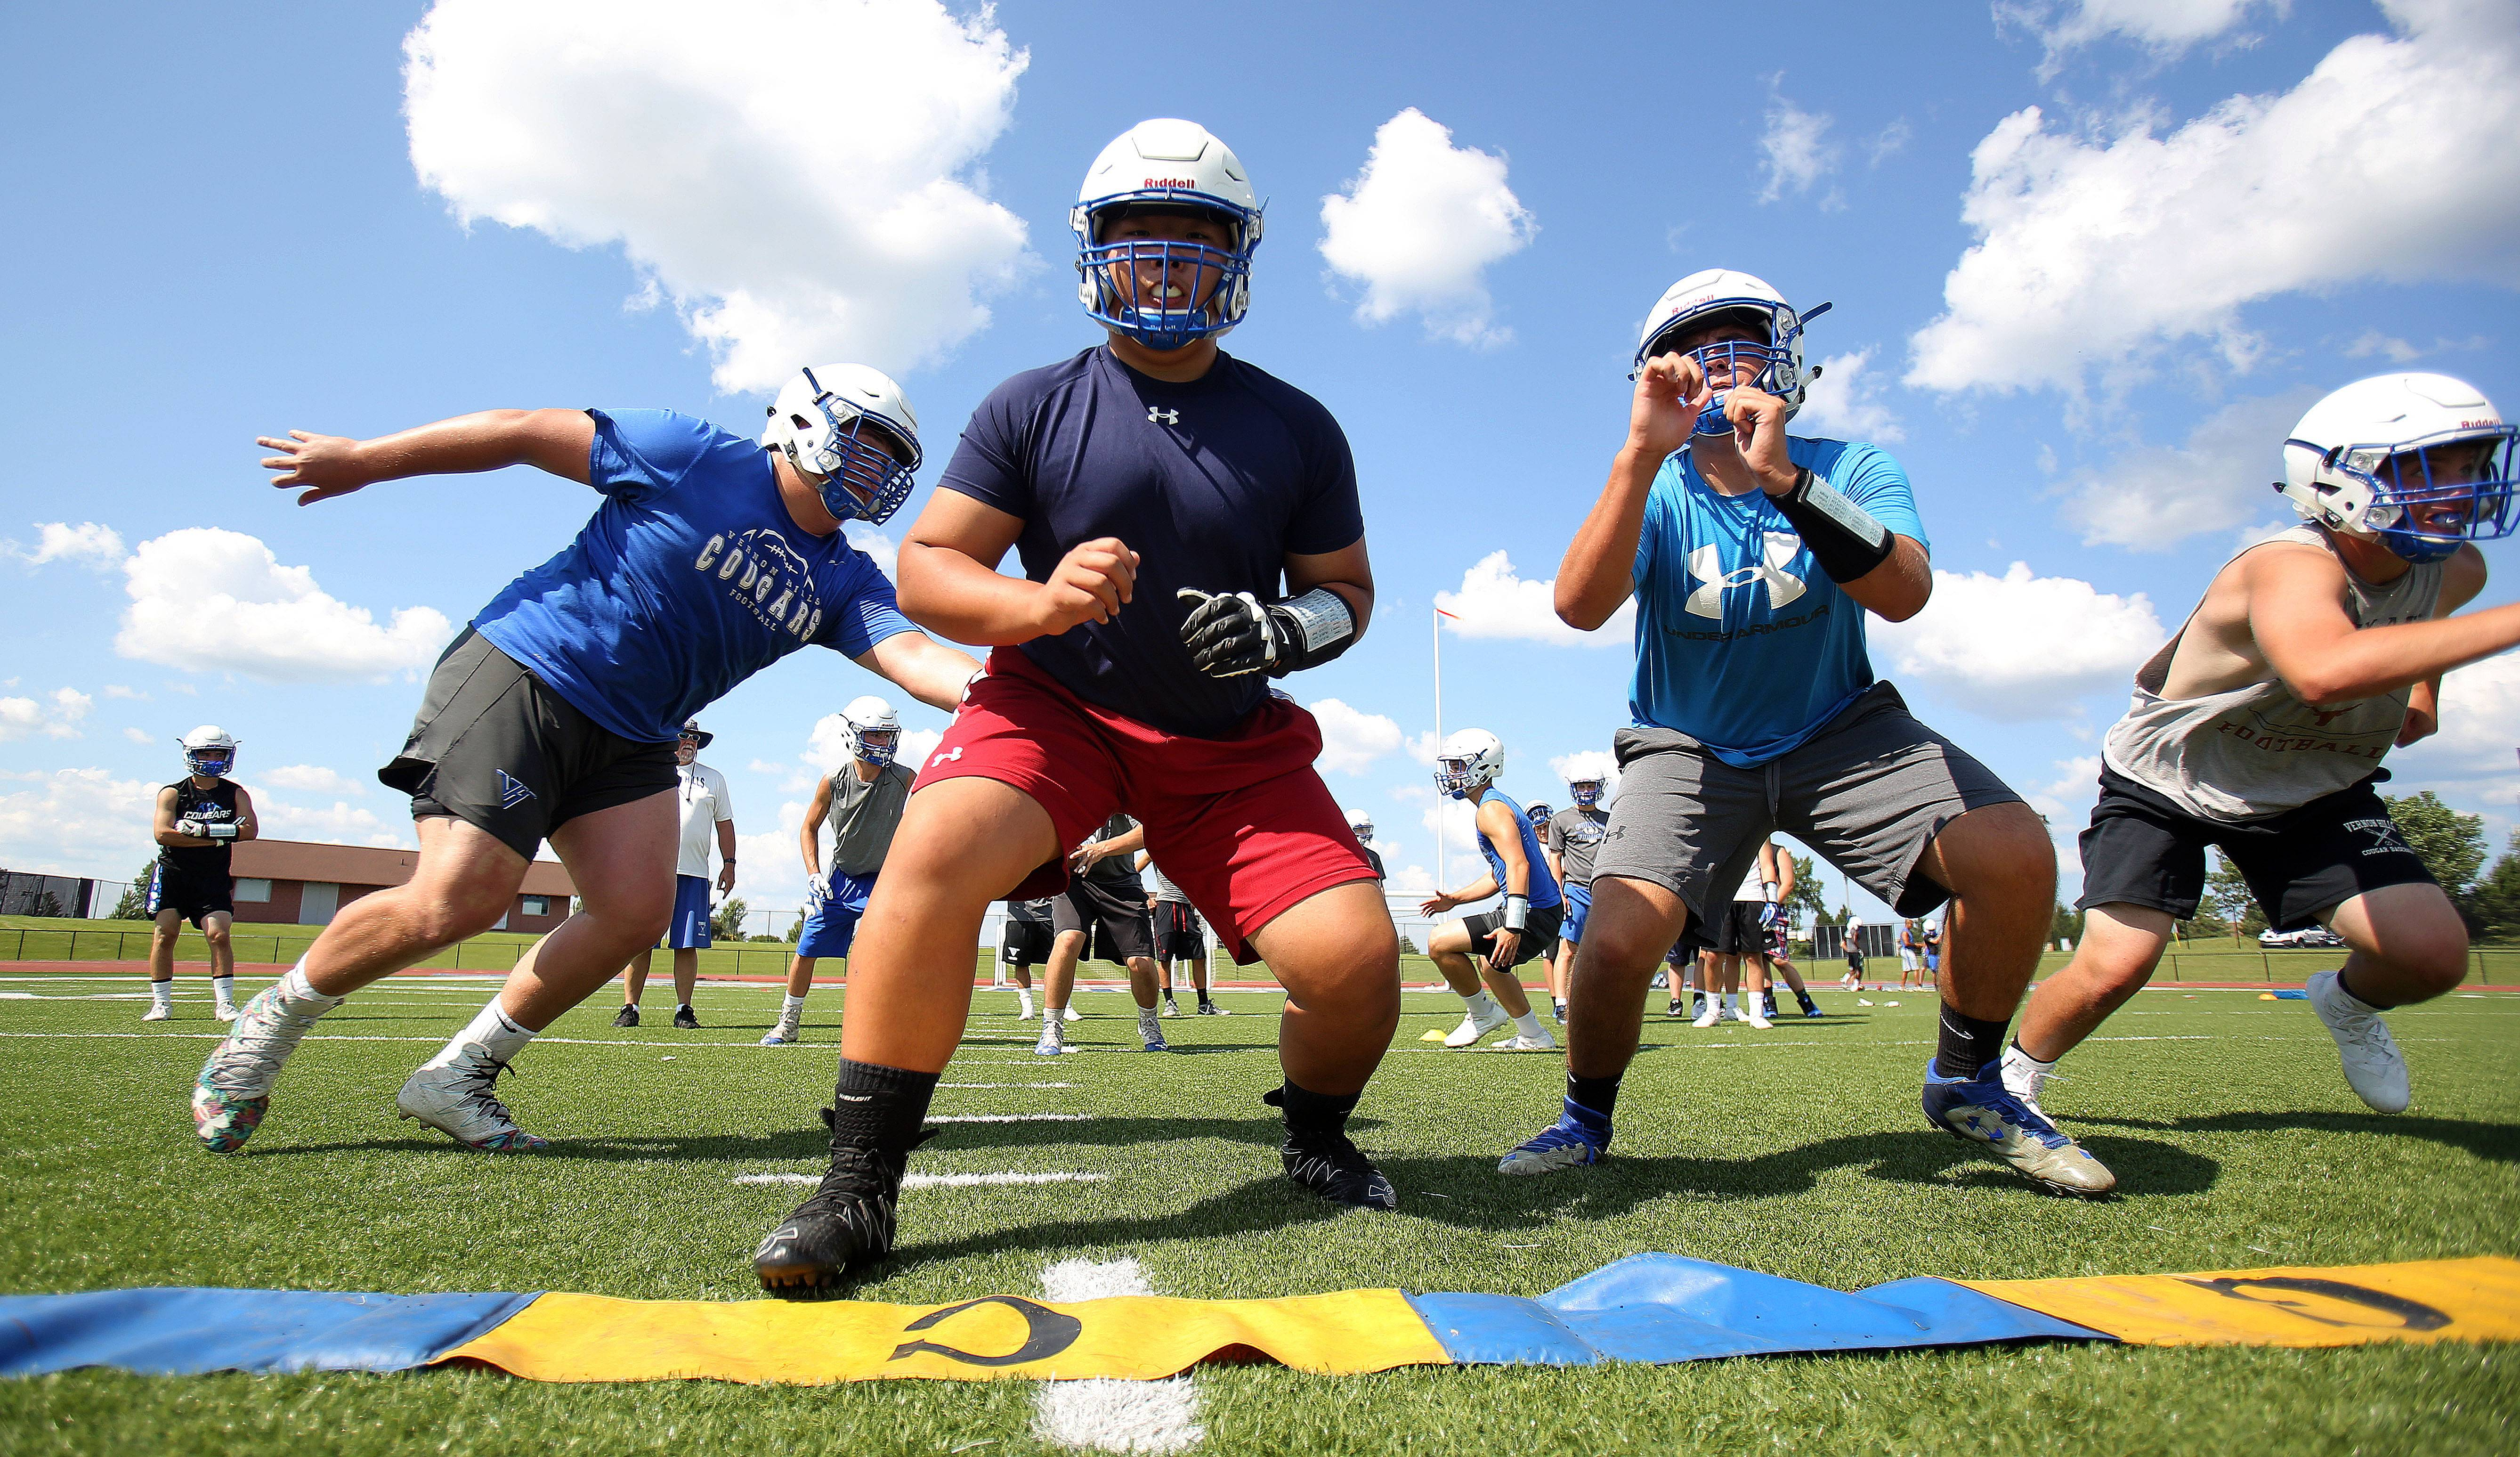 Lineman run through plays during an early football practice at Vernon Hills.